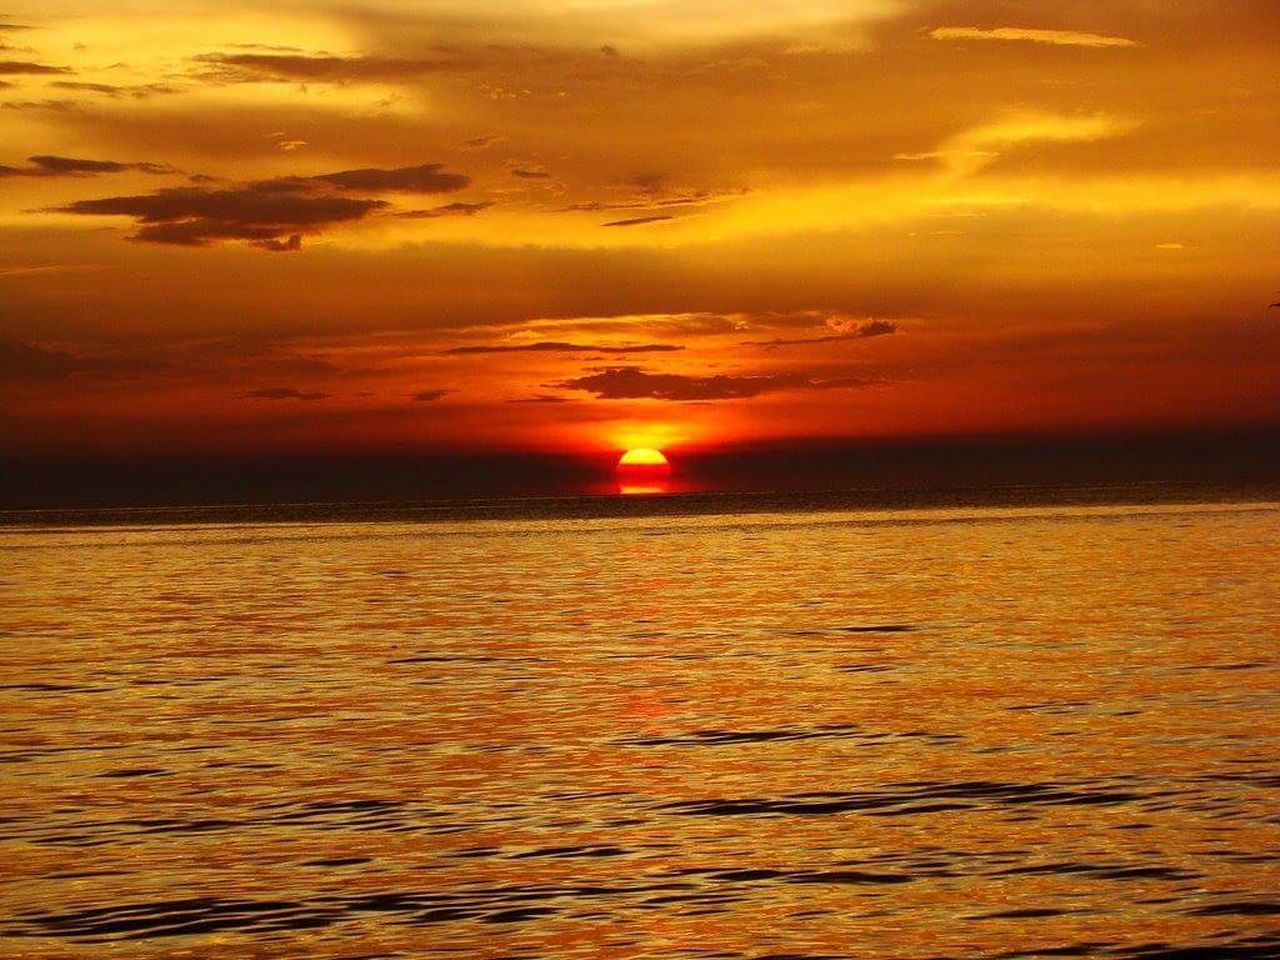 sunset, orange color, beauty in nature, sea, scenics, nature, dramatic sky, sun, horizon over water, cloud - sky, majestic, tranquility, tranquil scene, sky, atmospheric mood, no people, outdoors, idyllic, vibrant color, reflection, silhouette, red, awe, water, travel destinations, multi colored, horizon, wave, day